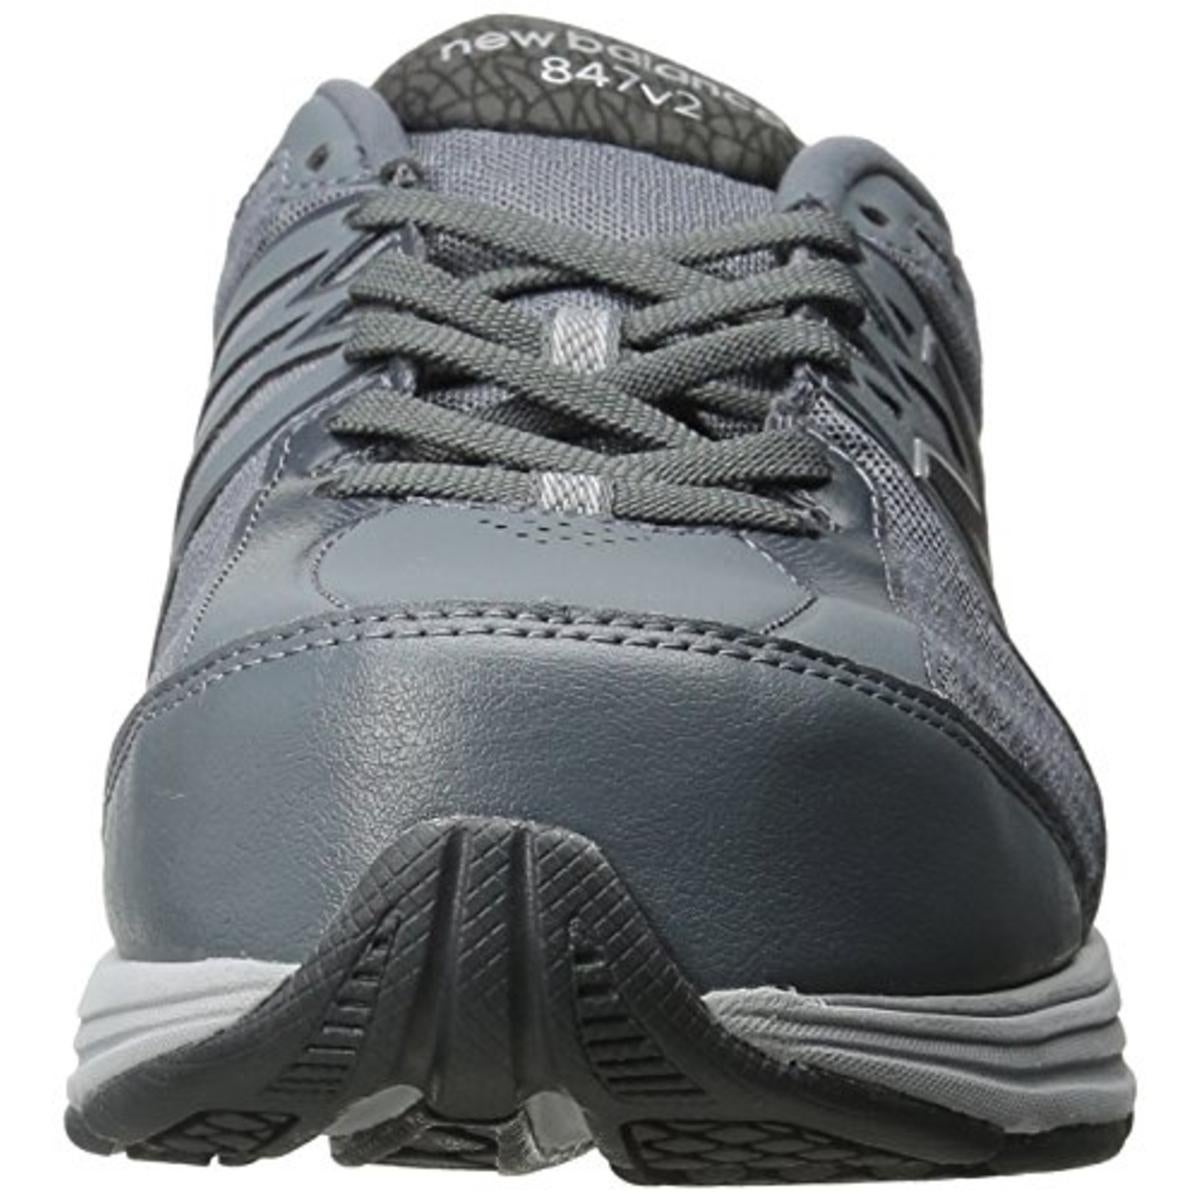 5d9772c03172e Shop New Balance Mens 847v2 Walking Shoes Non-Marking Rollbar Technology -  Free Shipping Today - Overstock - 22729426